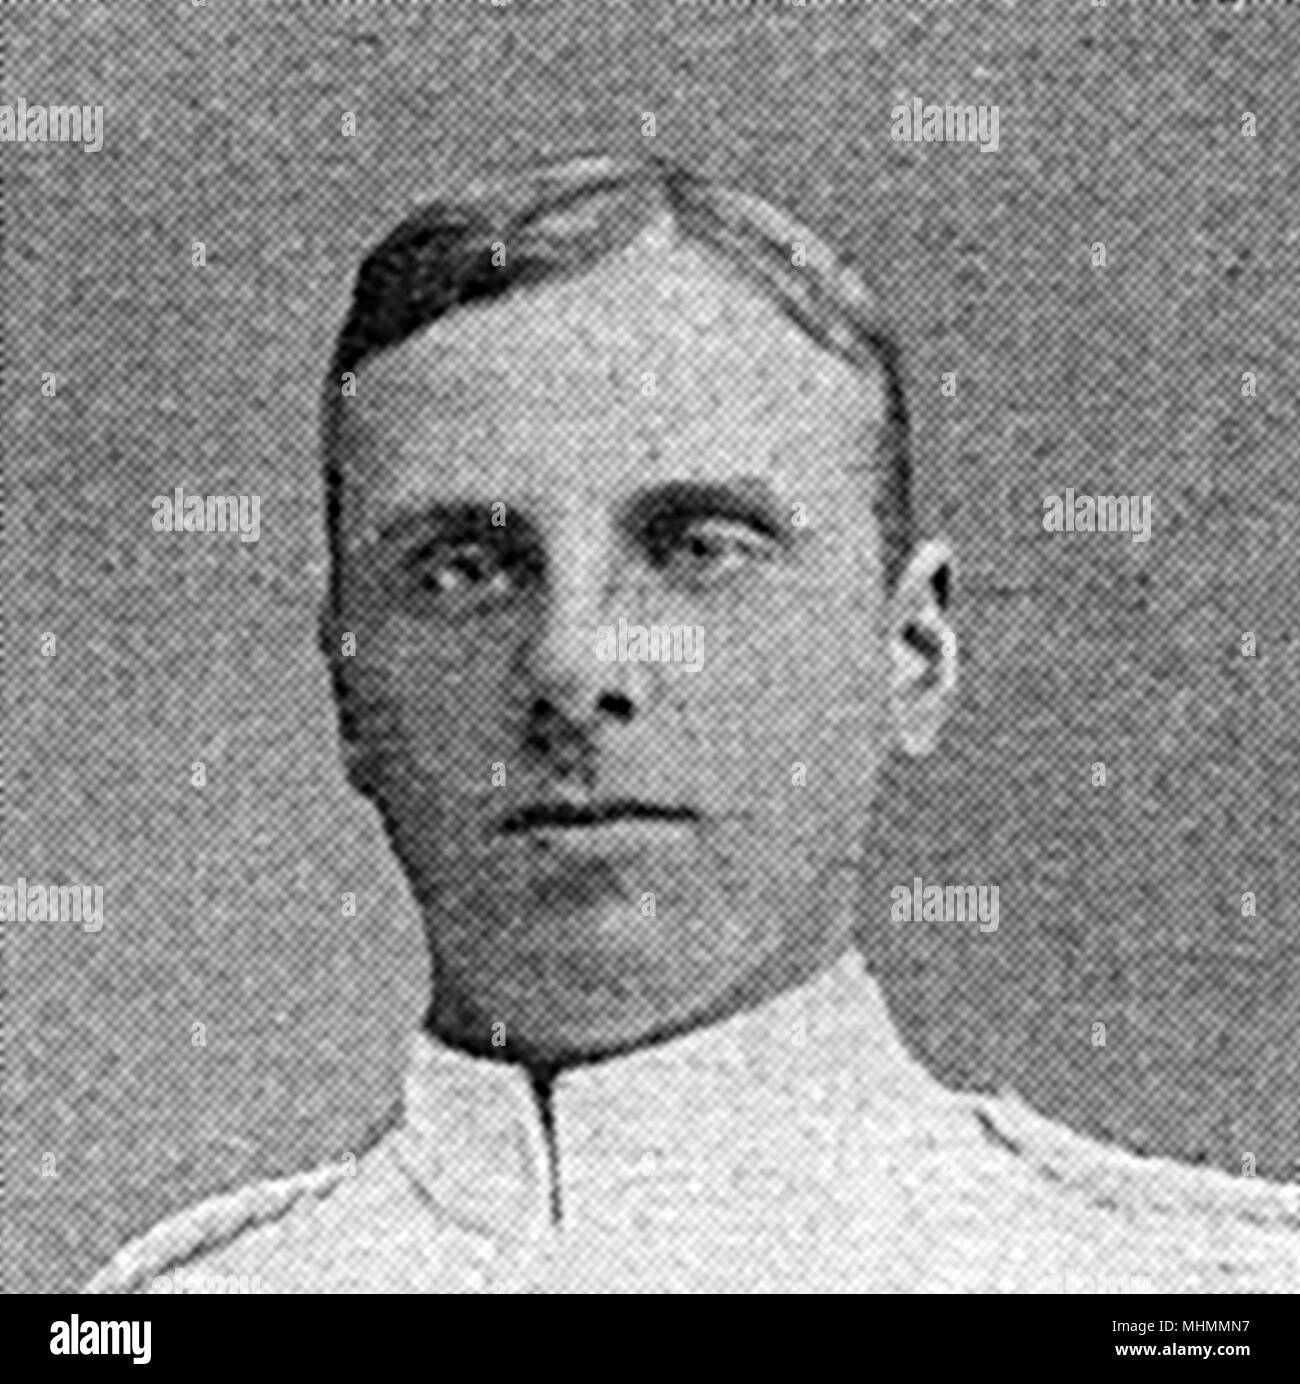 Lance-Corporal Wilfred Dolby Fuller (28 July 1893  22 November 1947), Grenadier Guards, who earned the Victoria Cross for bravery at the Battle of Neuve Chapelle.     Date: 1915 - Stock Image